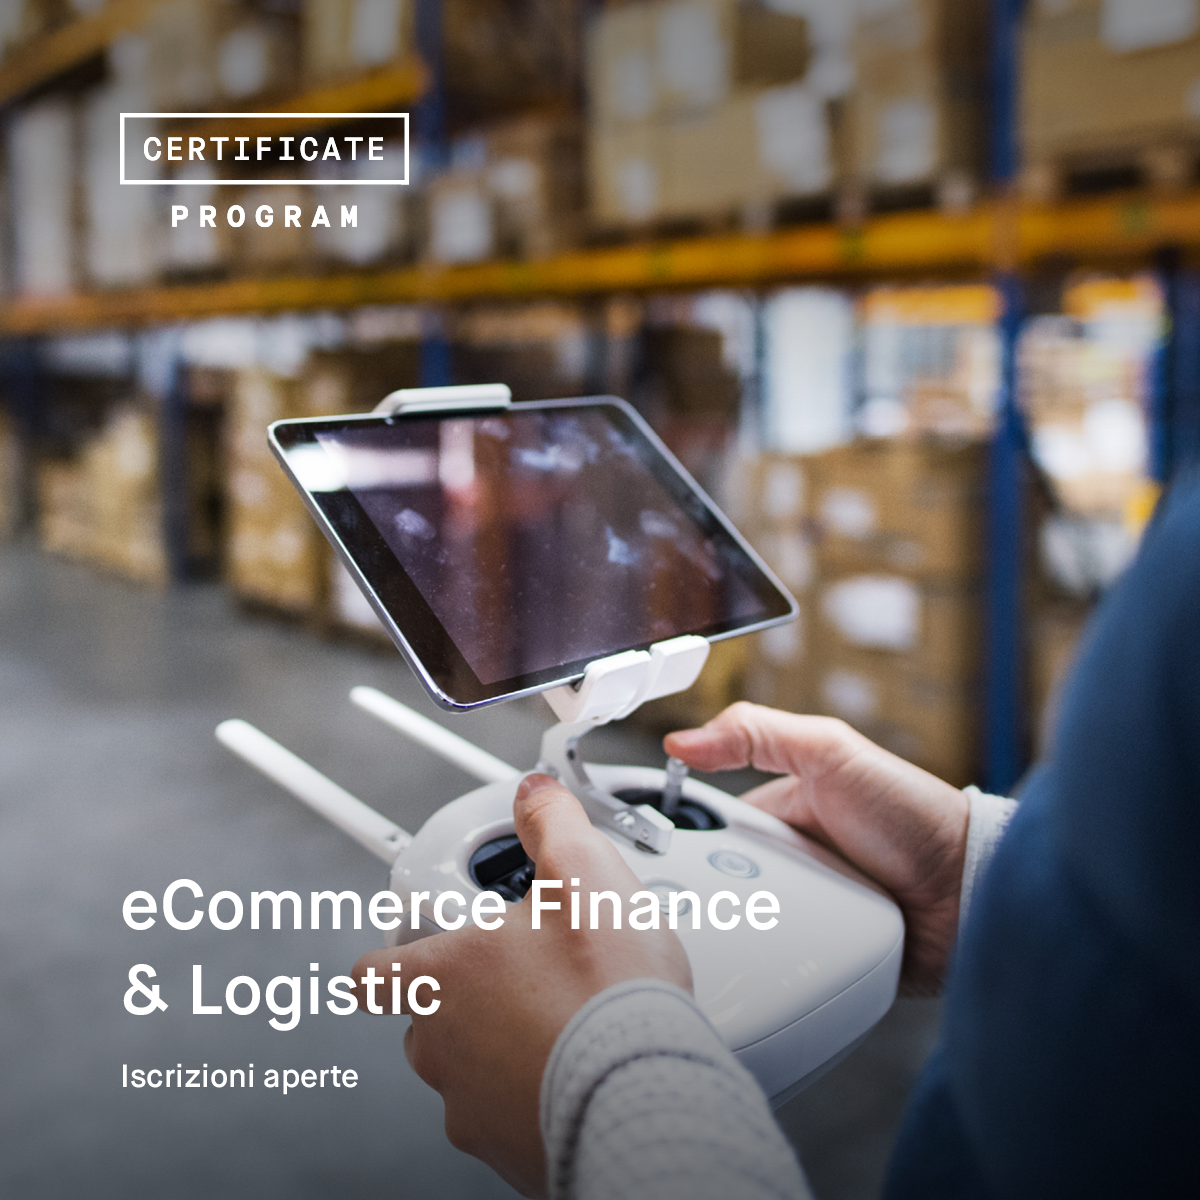 ECommerce Finance&Logistics